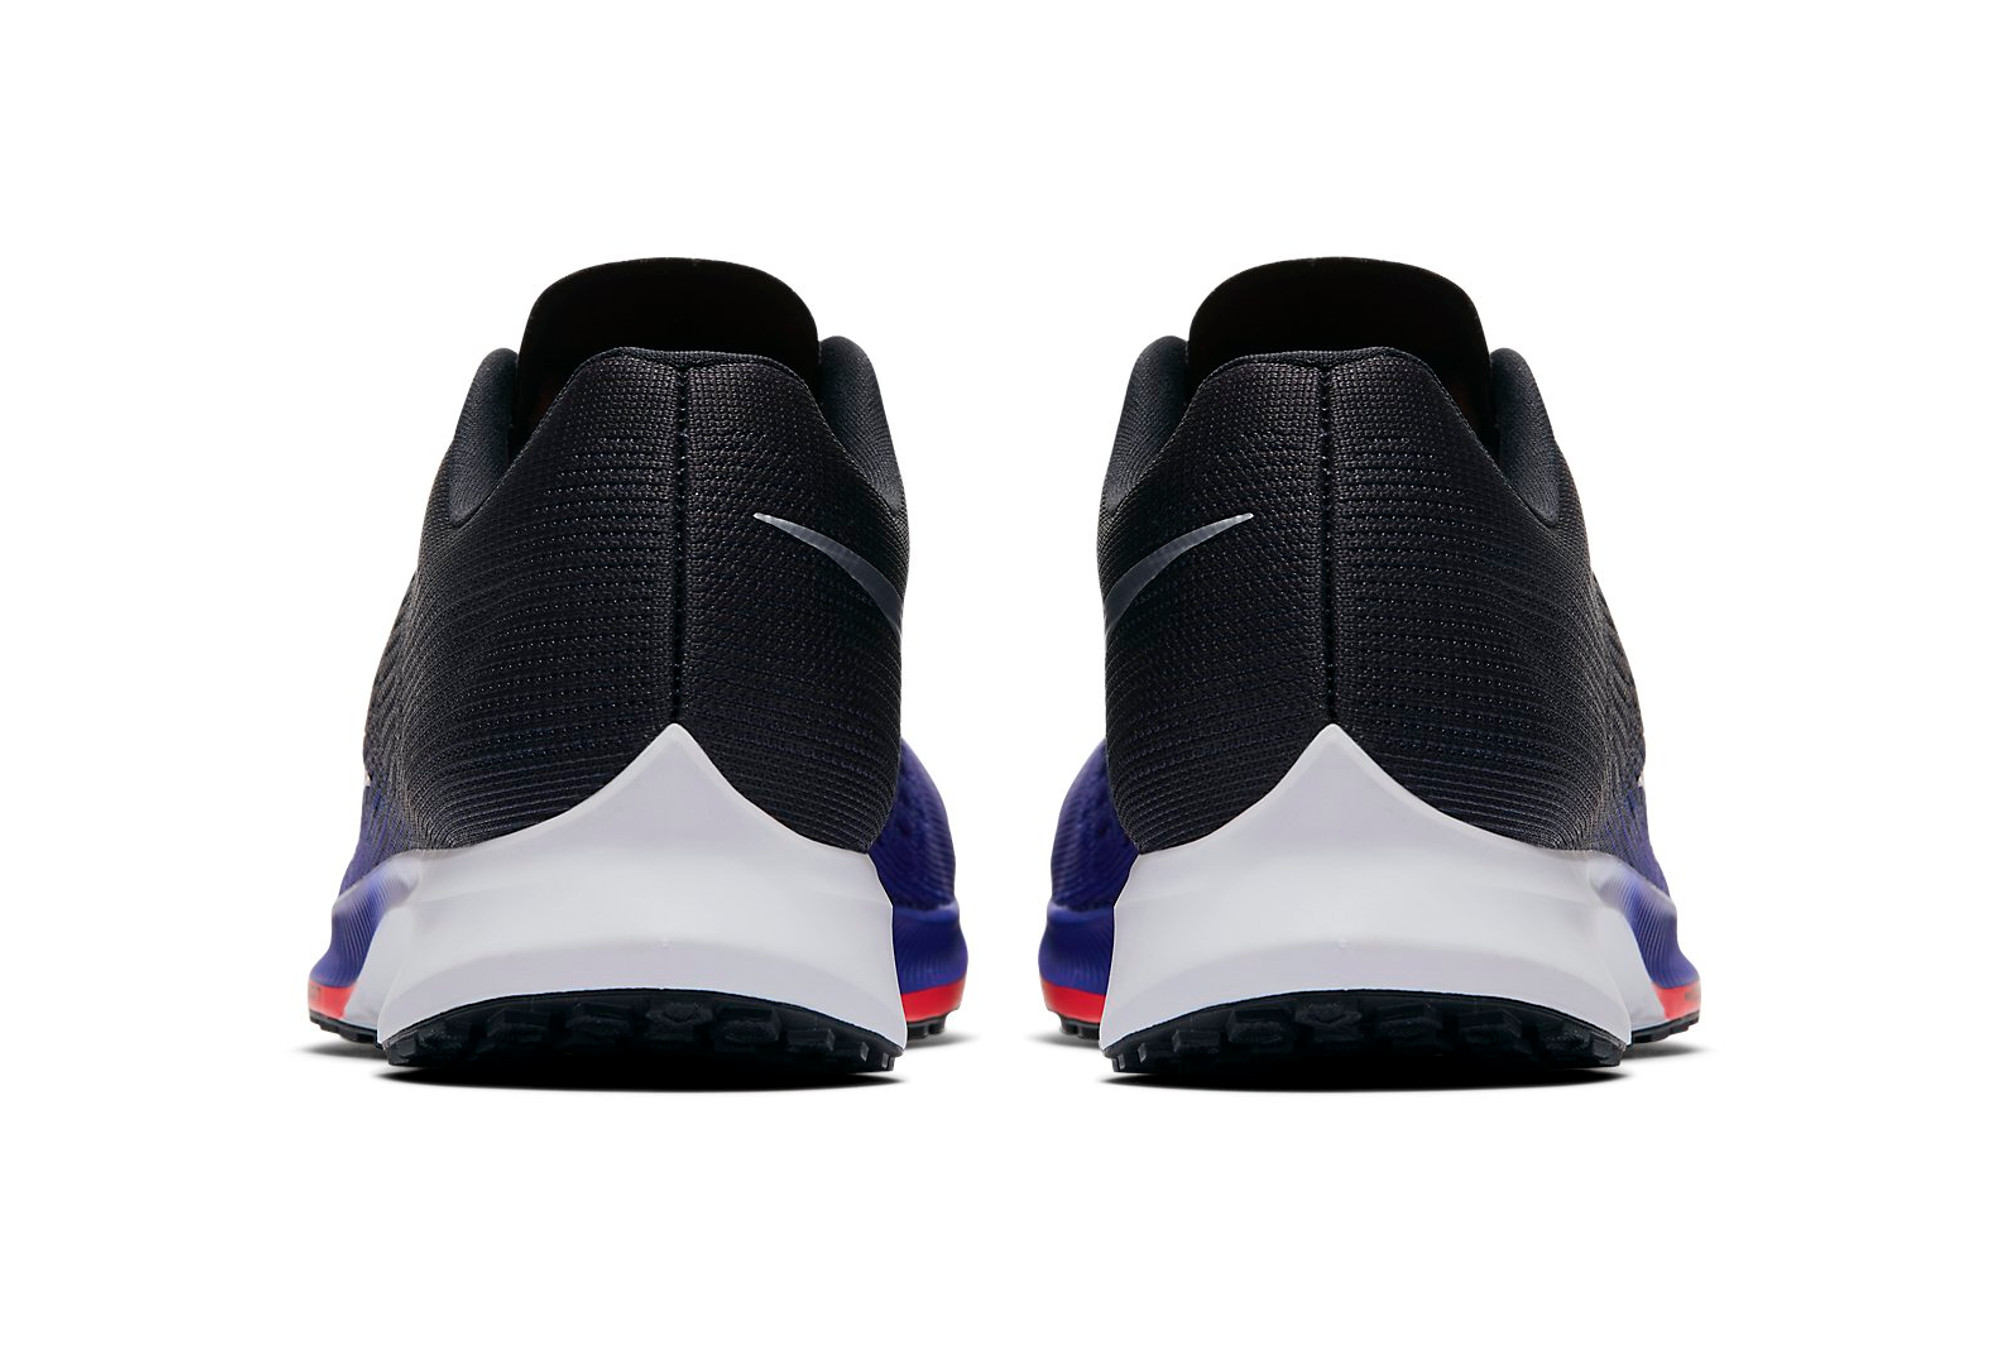 Nike Zoom Triathlon 9 Air De Noir Elite Violet Chaussures xHqSPw